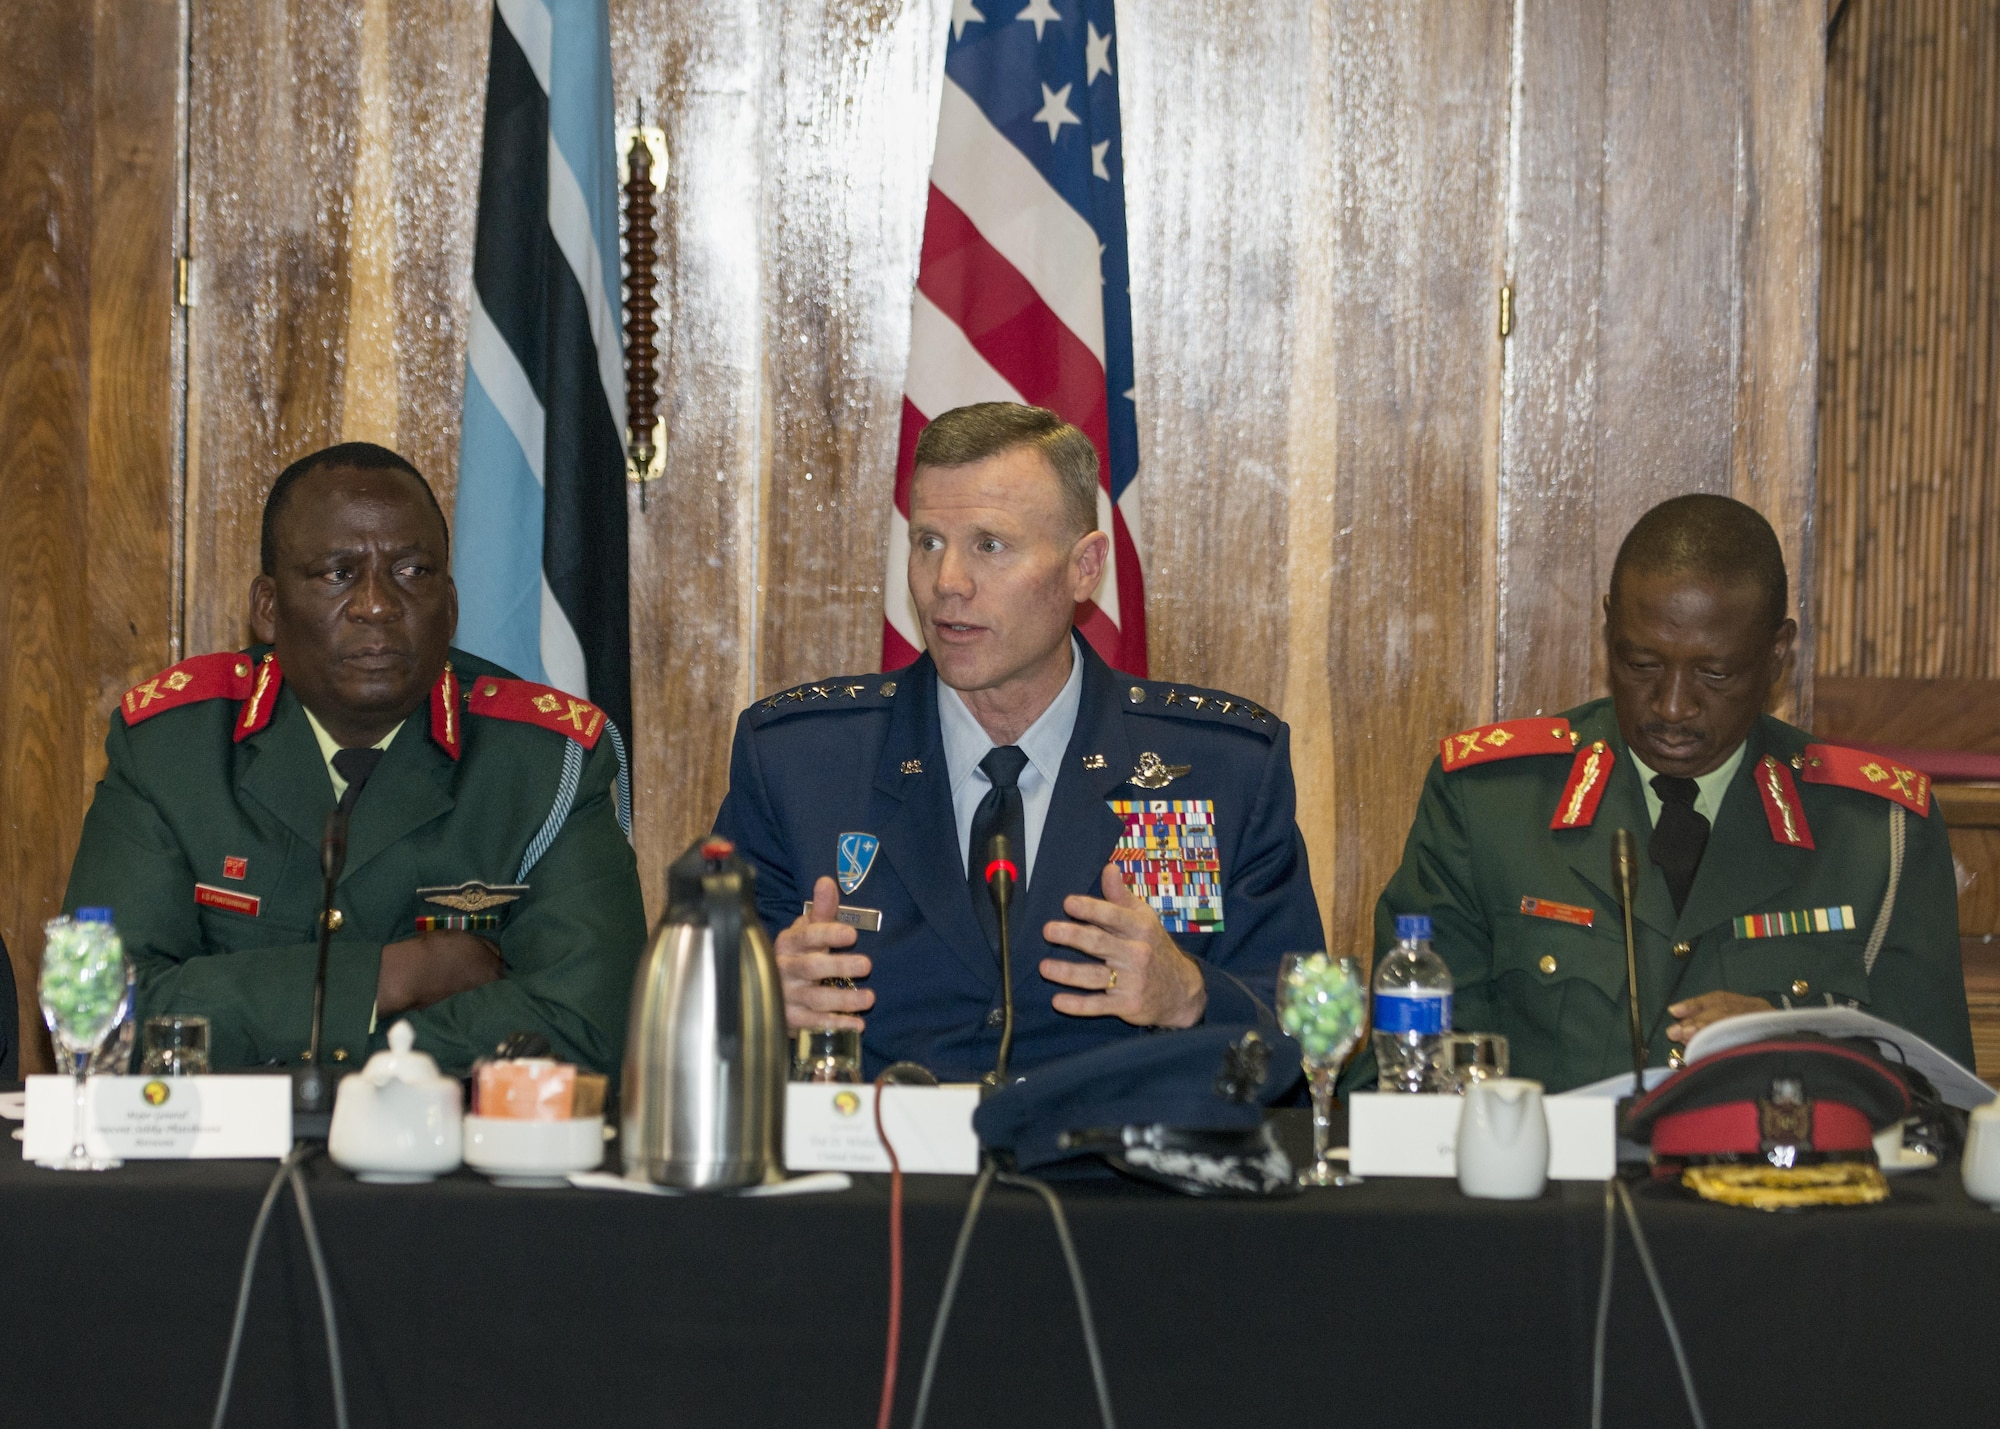 Gen. Tod D. Wolters, U.S. Air Forces in Europe and Air Forces Africa commander, speaks during the opening ceremony of the 2017 African Air Chiefs Symposium in Kasane, Botswana on May 16, 2017. The purpose of the symposium is to create a forum for air chiefs from across the African continent to come together to address regional and continental issues, enhance relationships and increase cooperation. This year's conference will focus on the training aspect of force development. (U.S. Air Force photo by Staff Sgt. Krystal Ardrey)